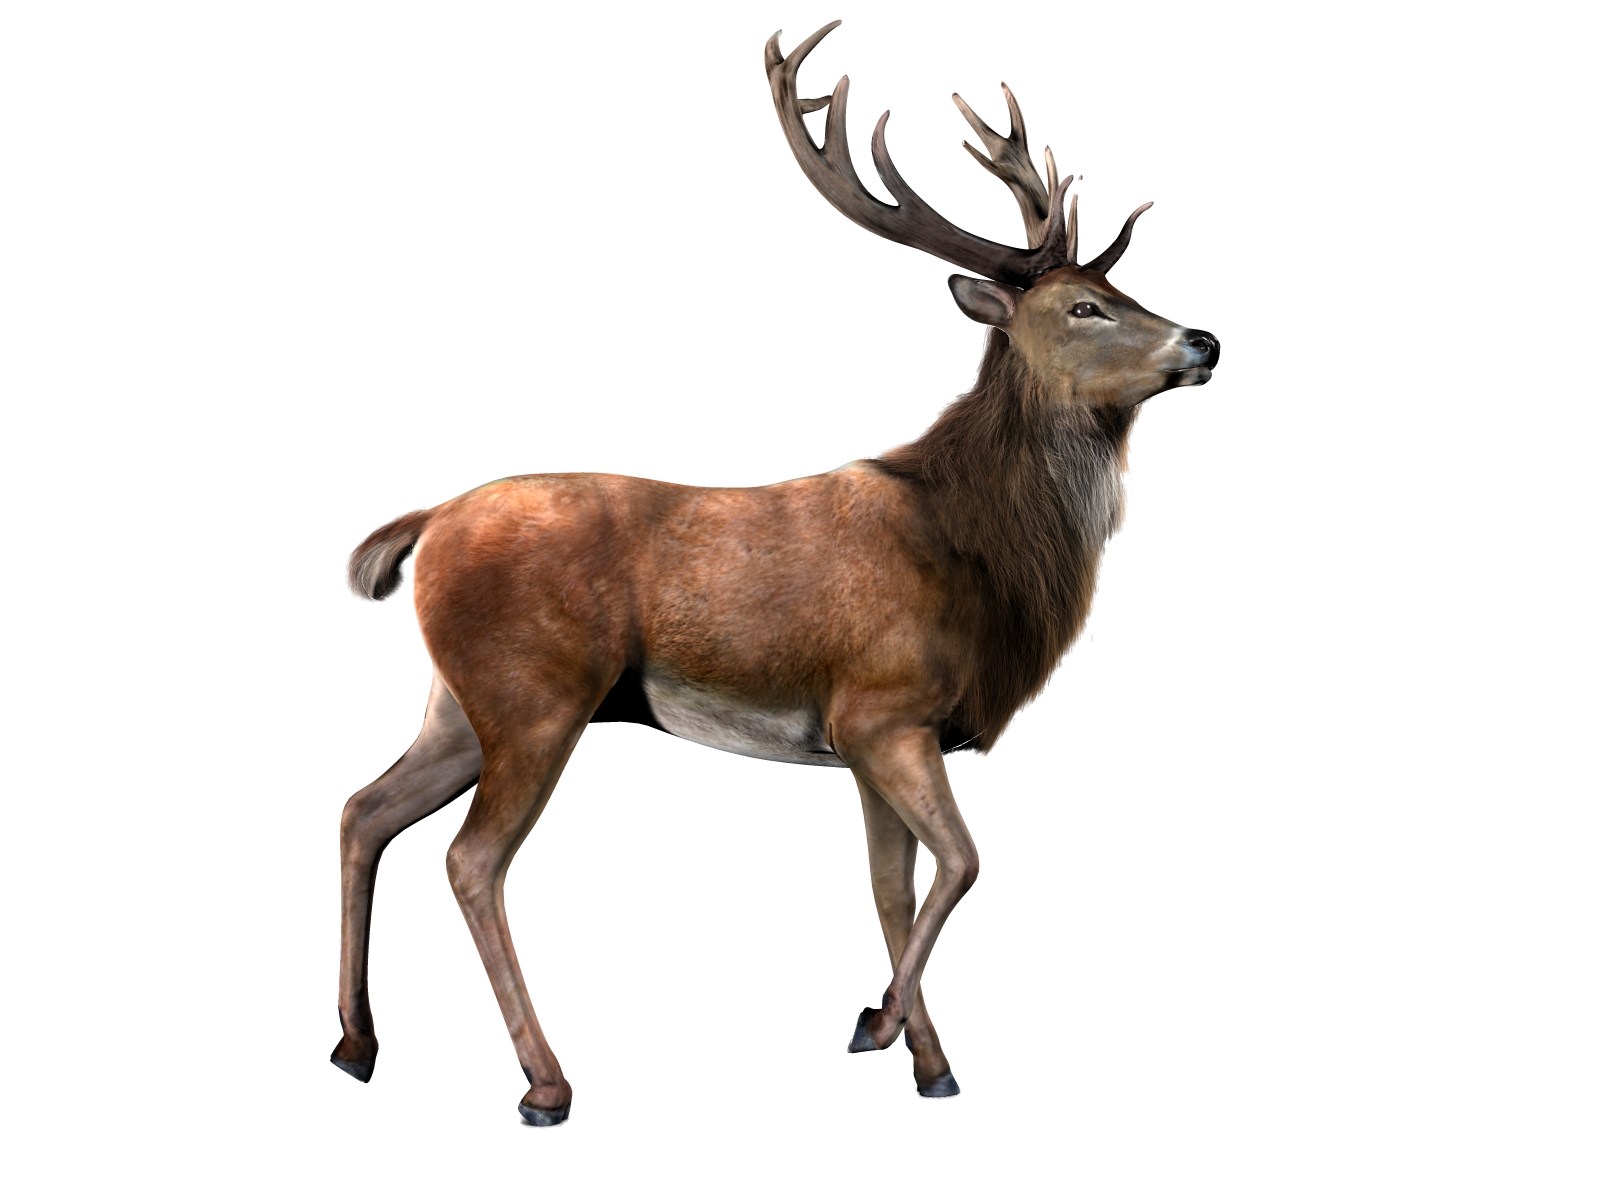 Red deer png. With transparent background mart